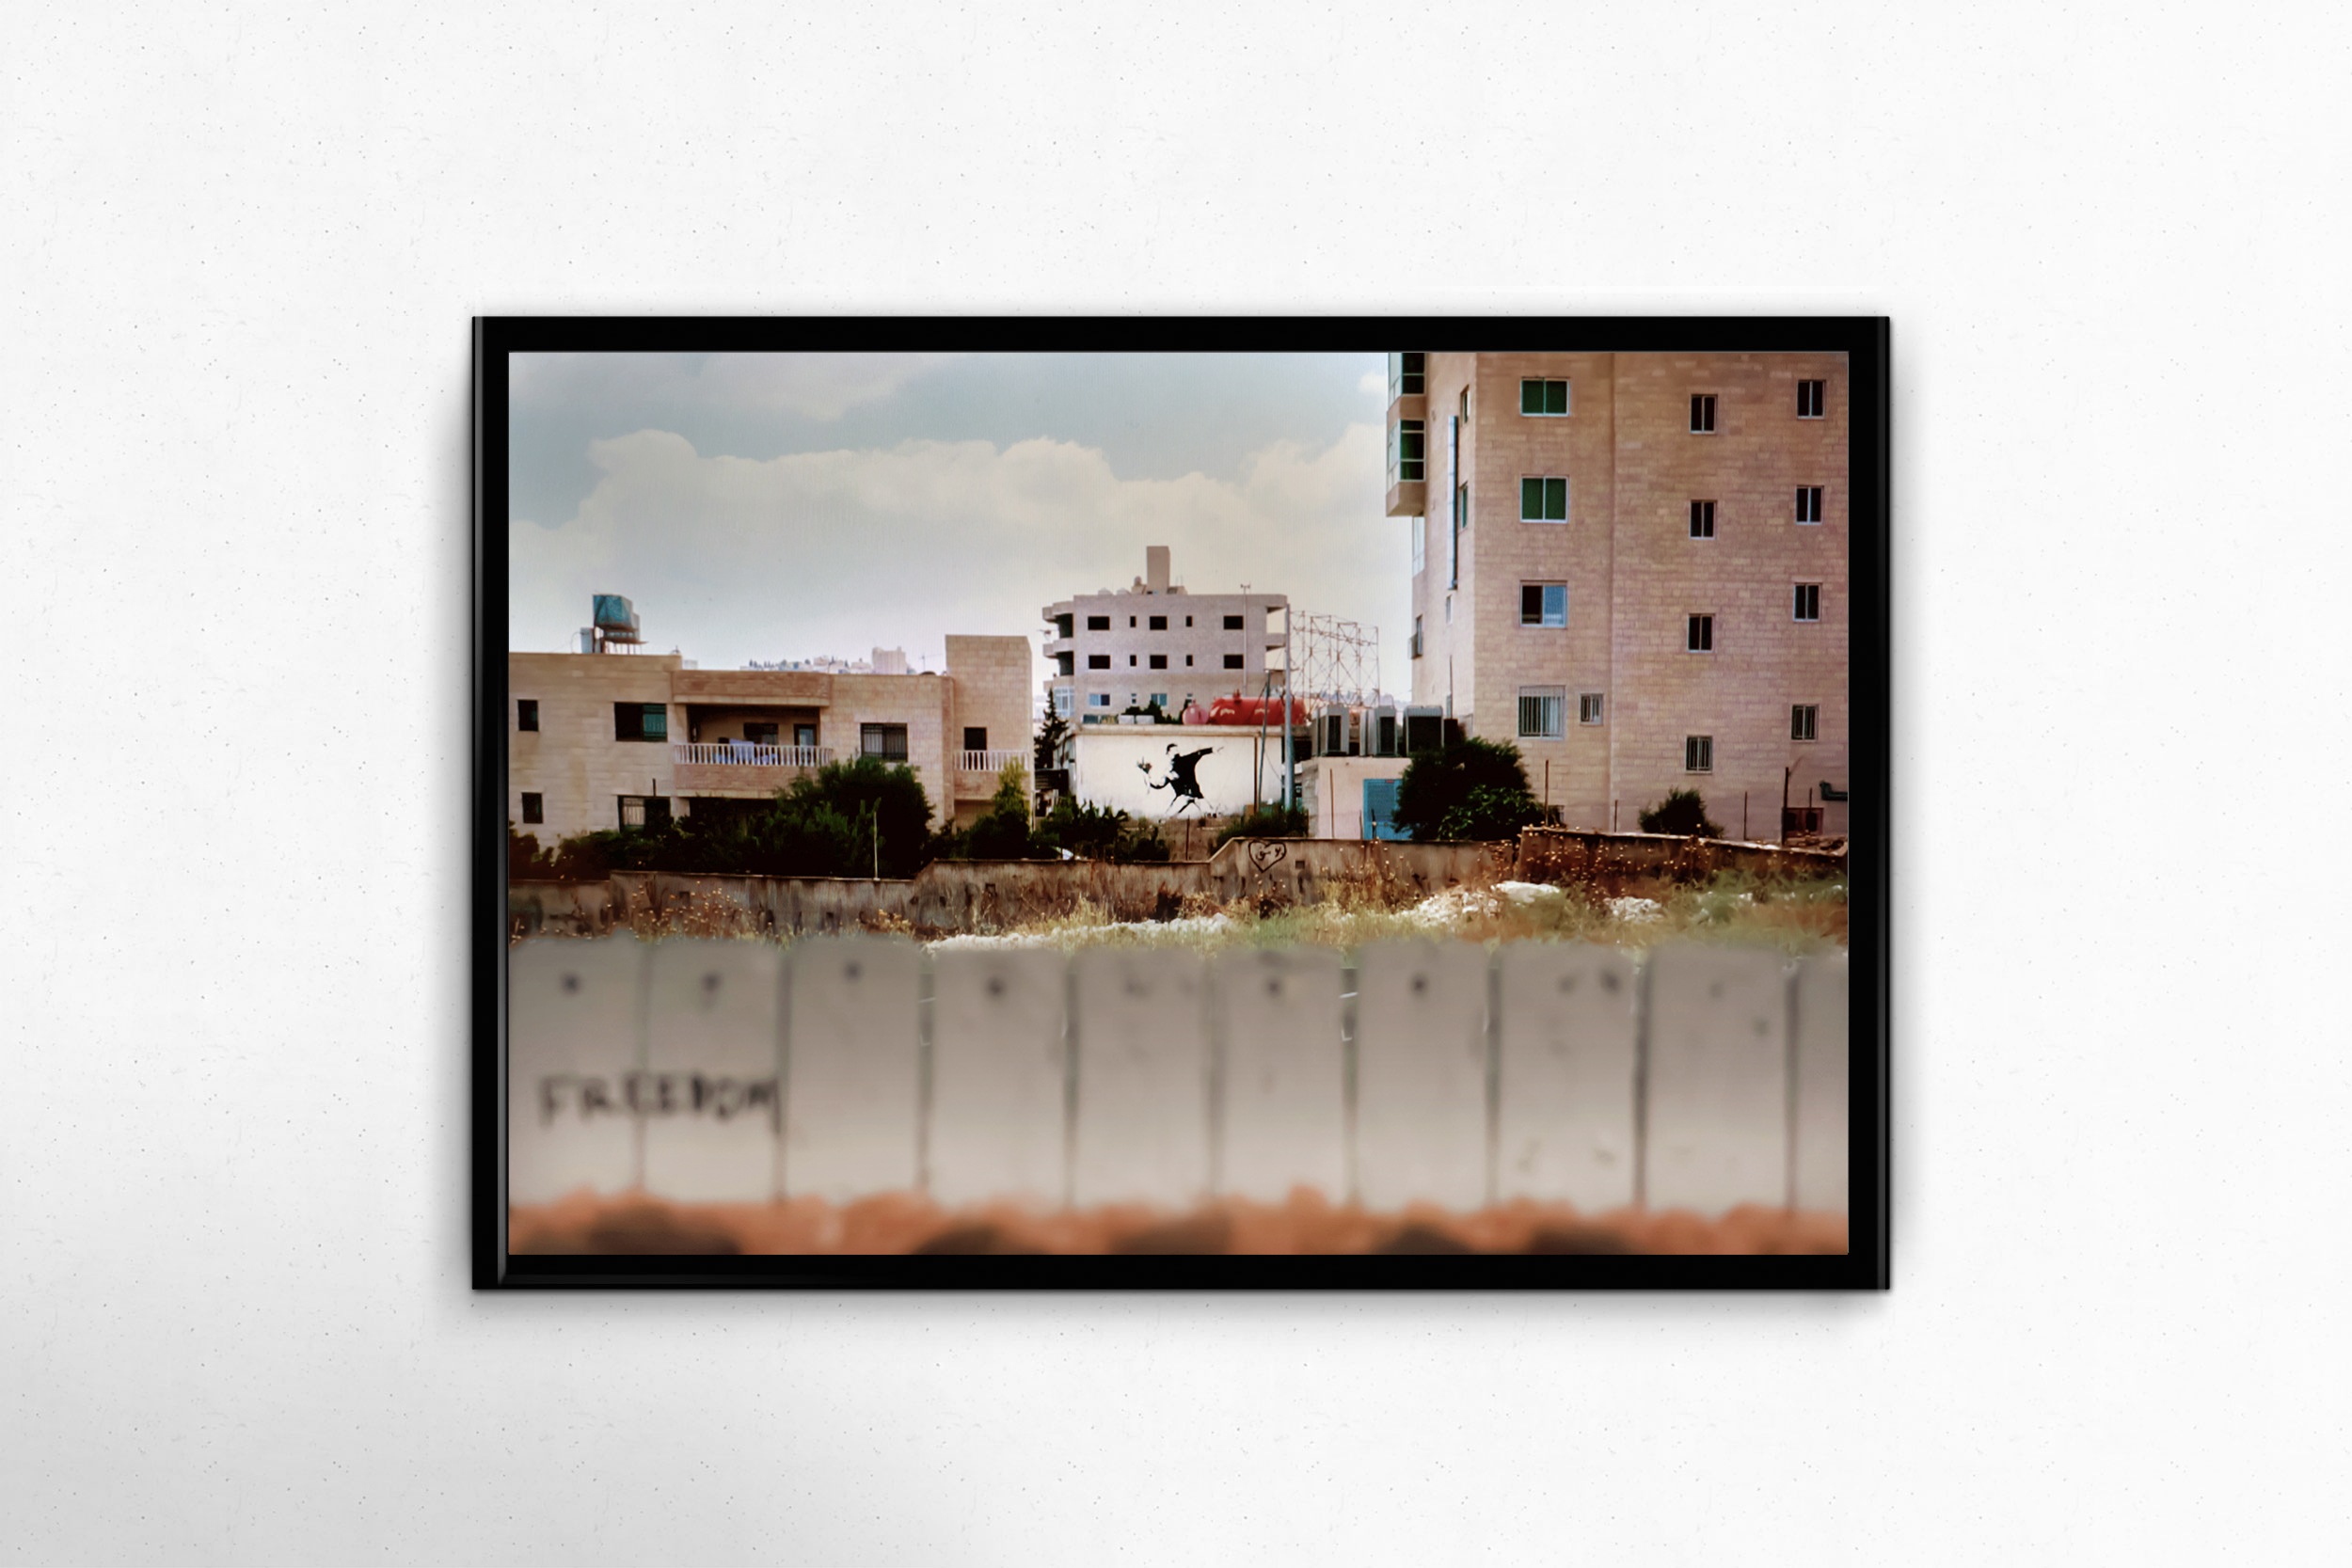 $150 donation - Crushing Walls Photo Print - No. 2 - Banksy in Bethlehem14x11, unframed